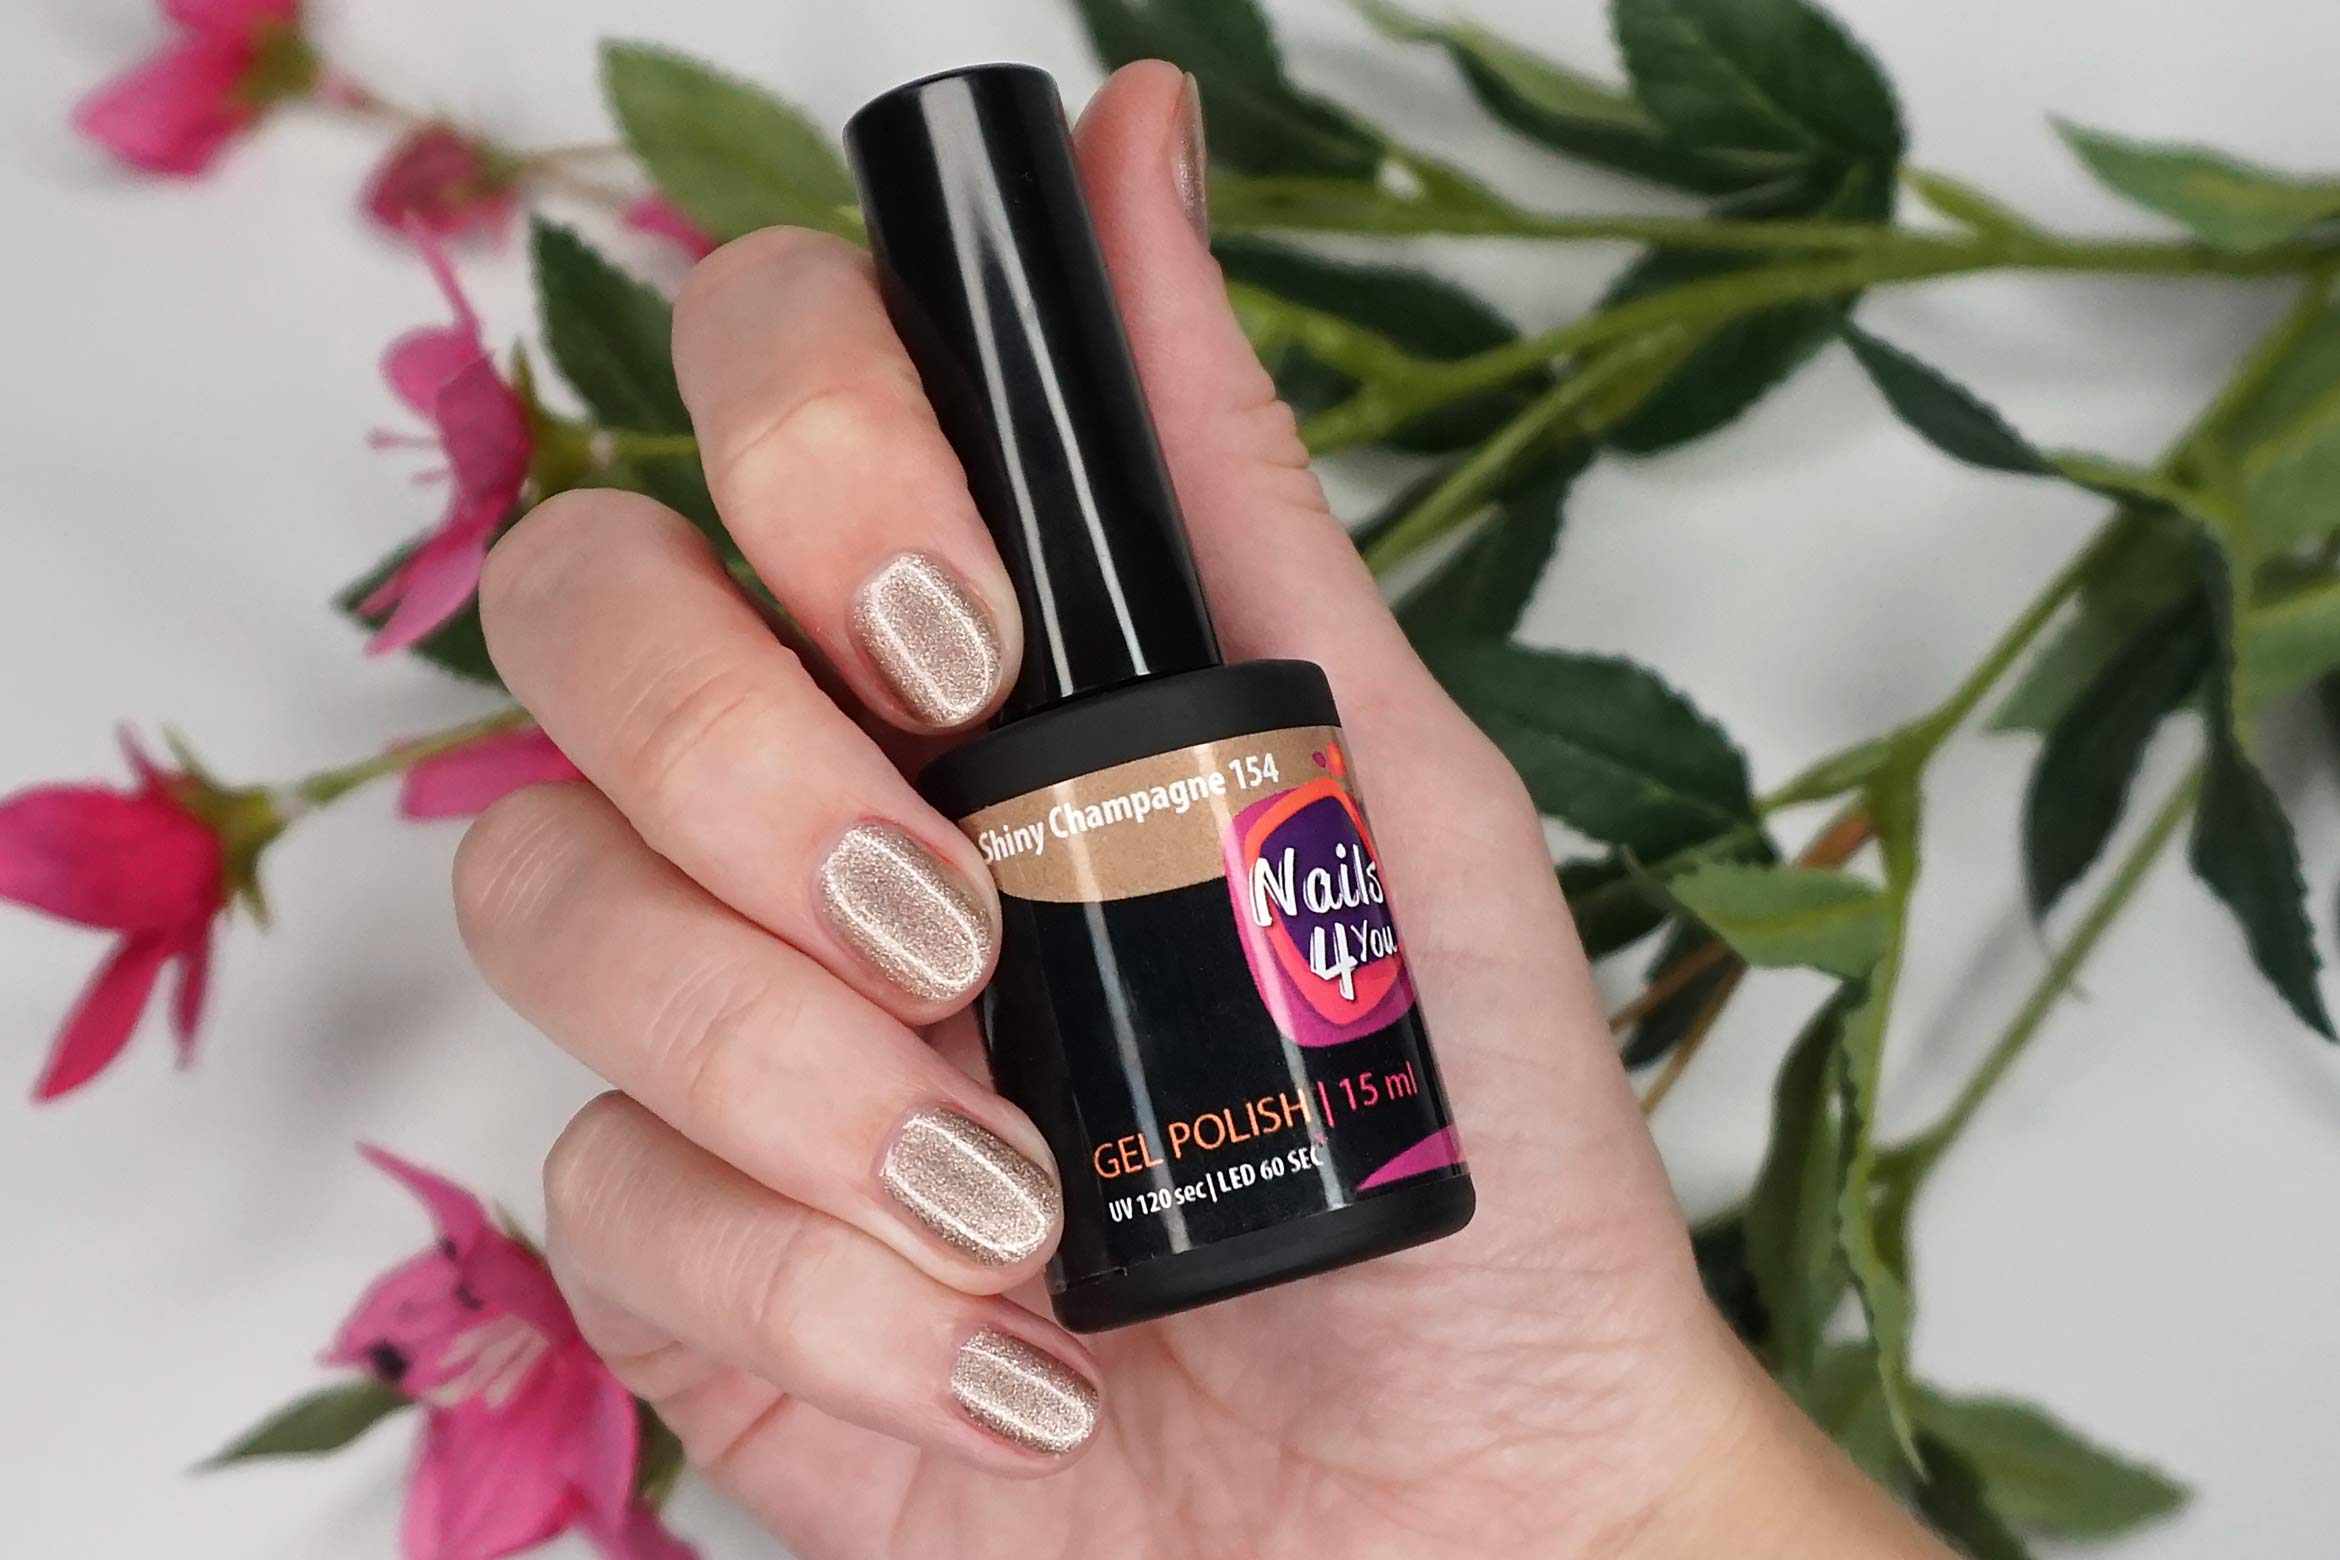 nails4you-shiny-champagne-154-swatch